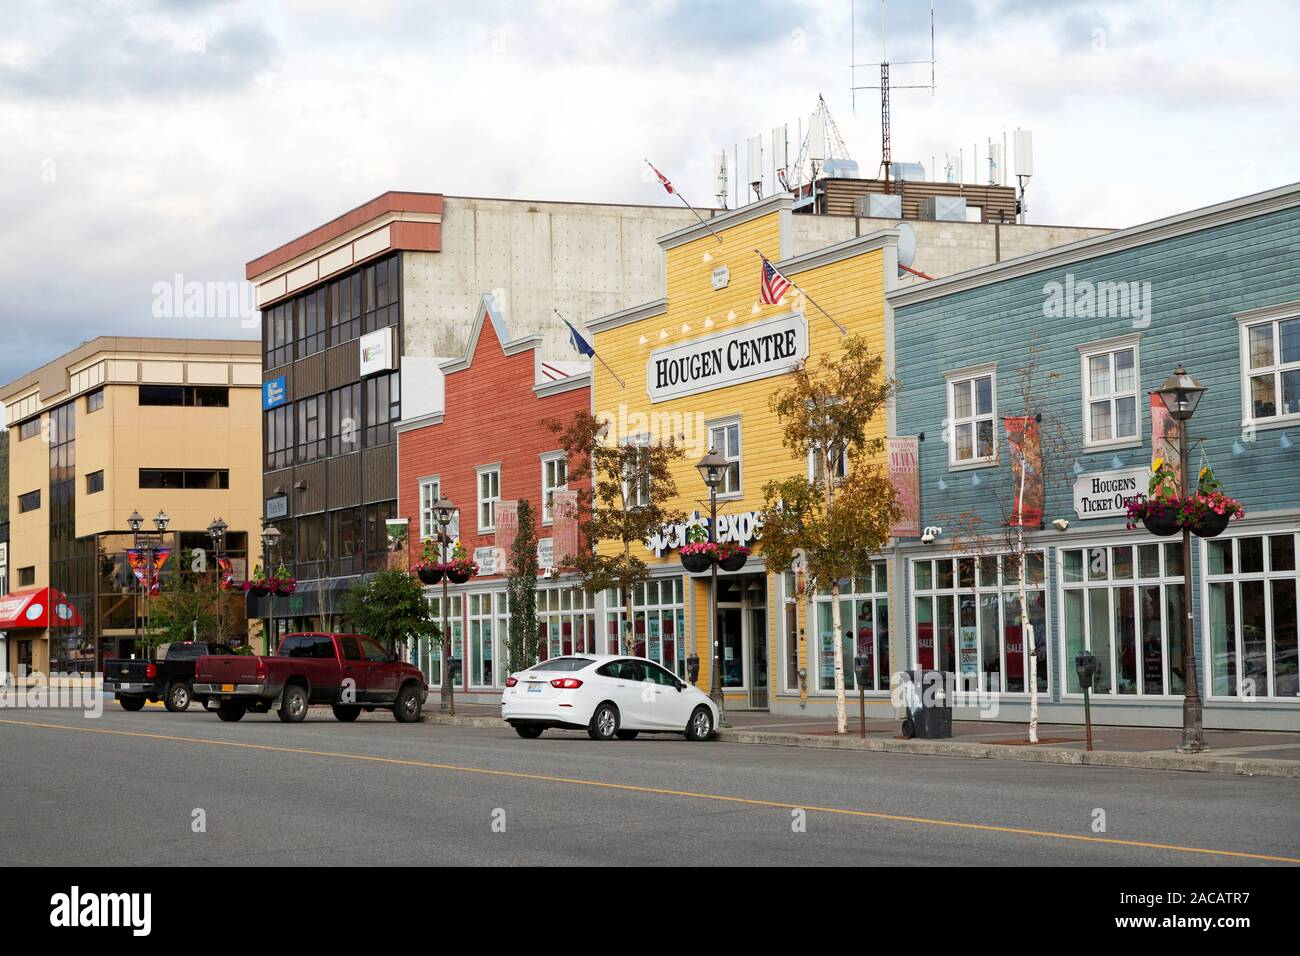 Building Facades On Main Street In Whitehorse The Yukon Canada The Buildings Have Wooden Facades Reminiscent Of Gold Rush Era Edifices Stock Photo Alamy